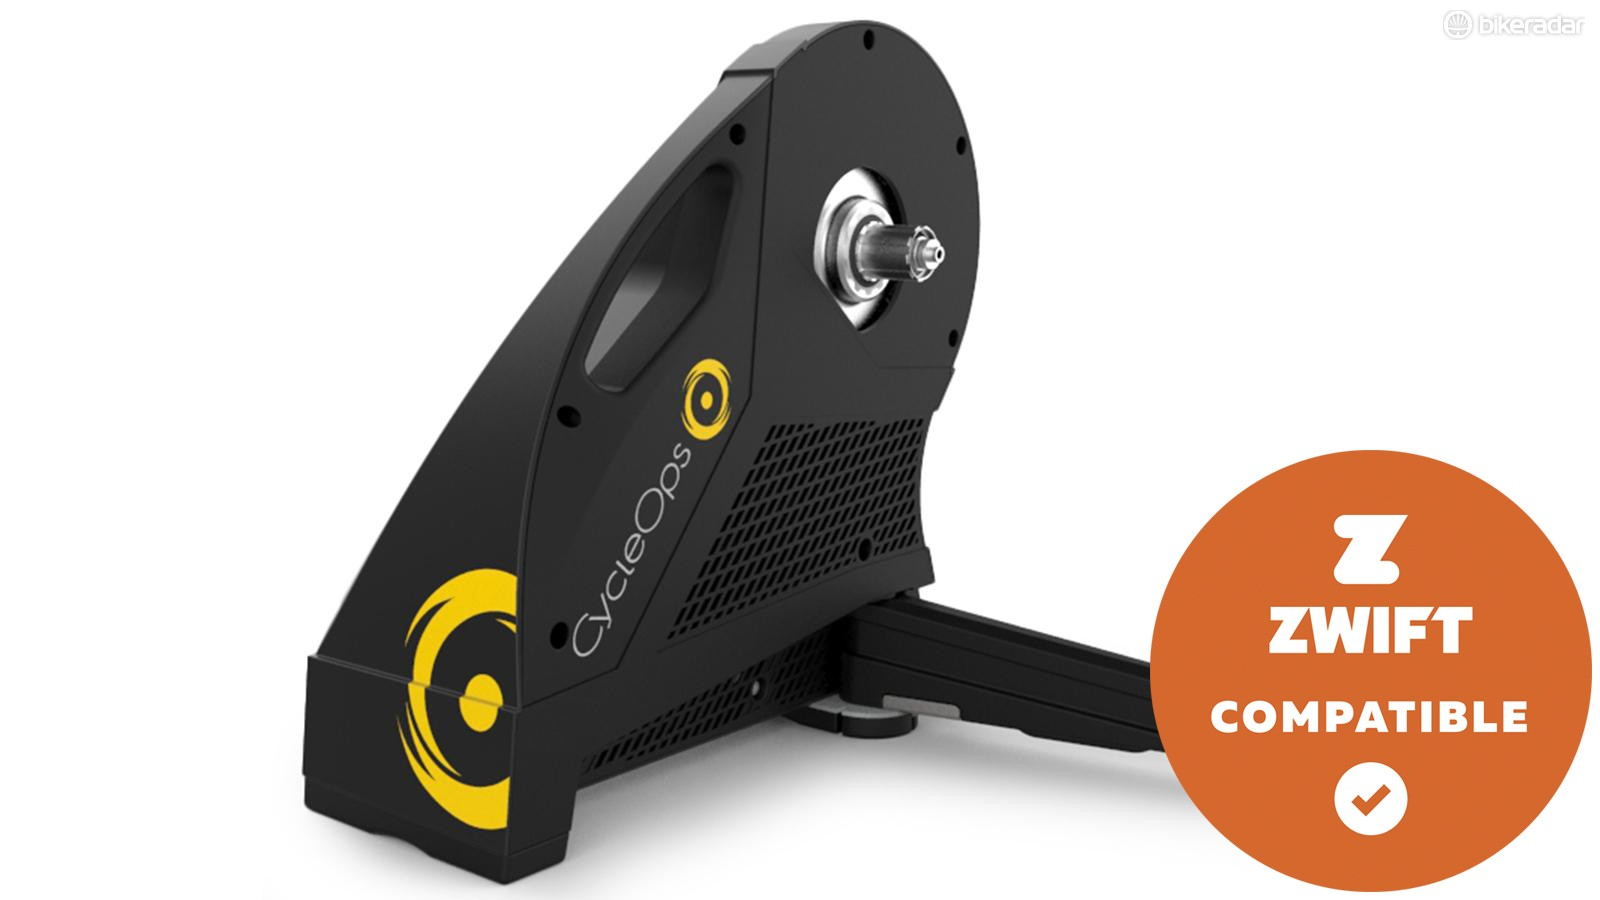 The new CycleOps Hammer direct-drive smart trainer